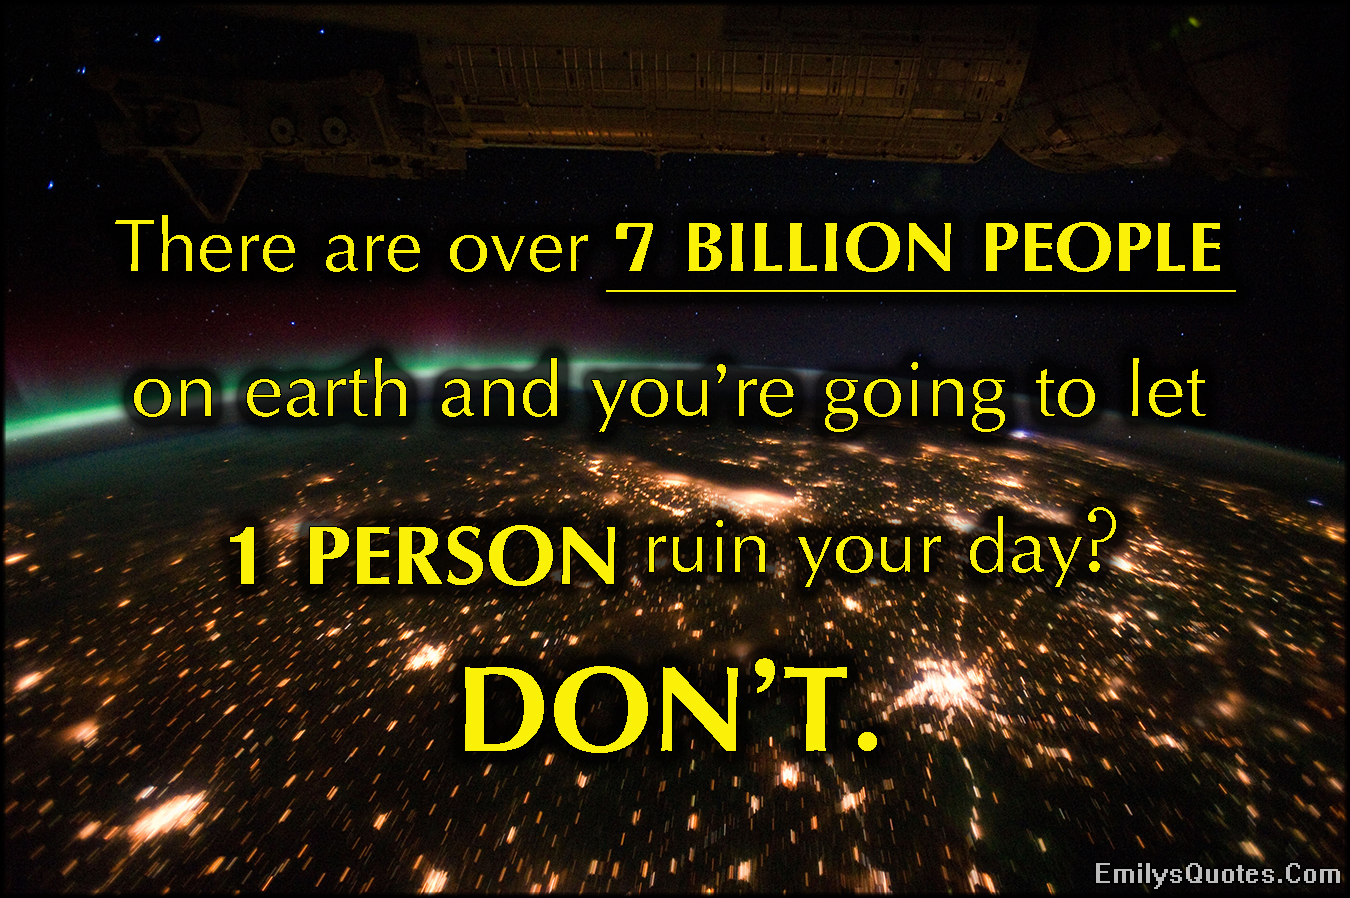 EmilysQuotes.Com - 7 BILLION, people, earth, 1 person, ruin day, funny, inspirational, relationship, unknown